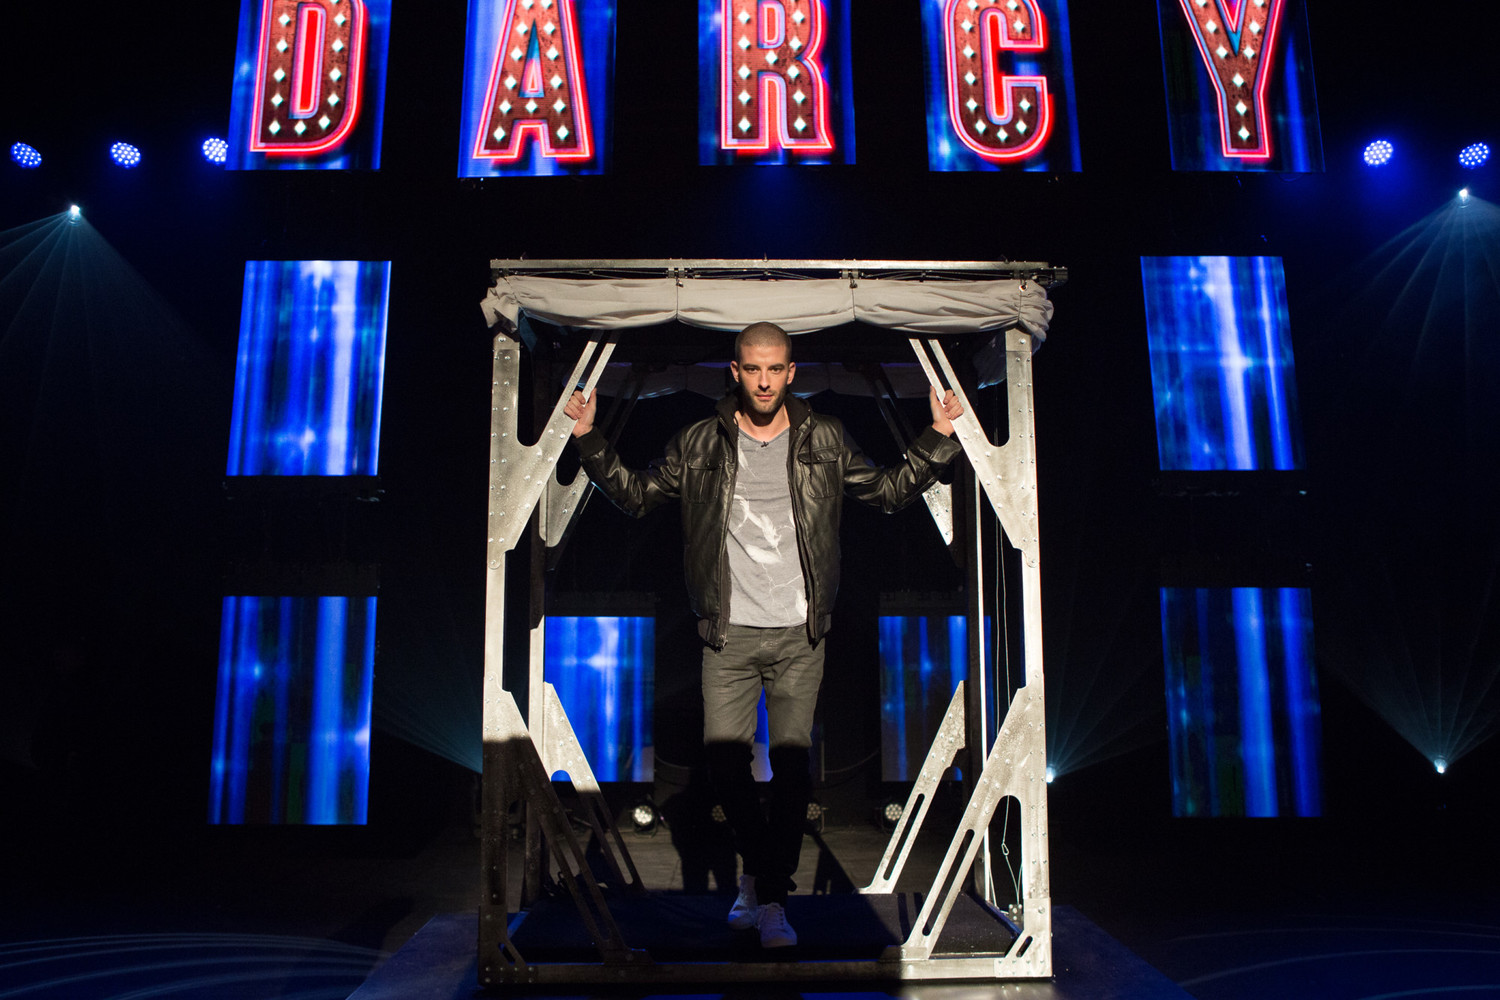 BWW Review: THE ILLUSIONISTS Sparks Magic in Vancouver!